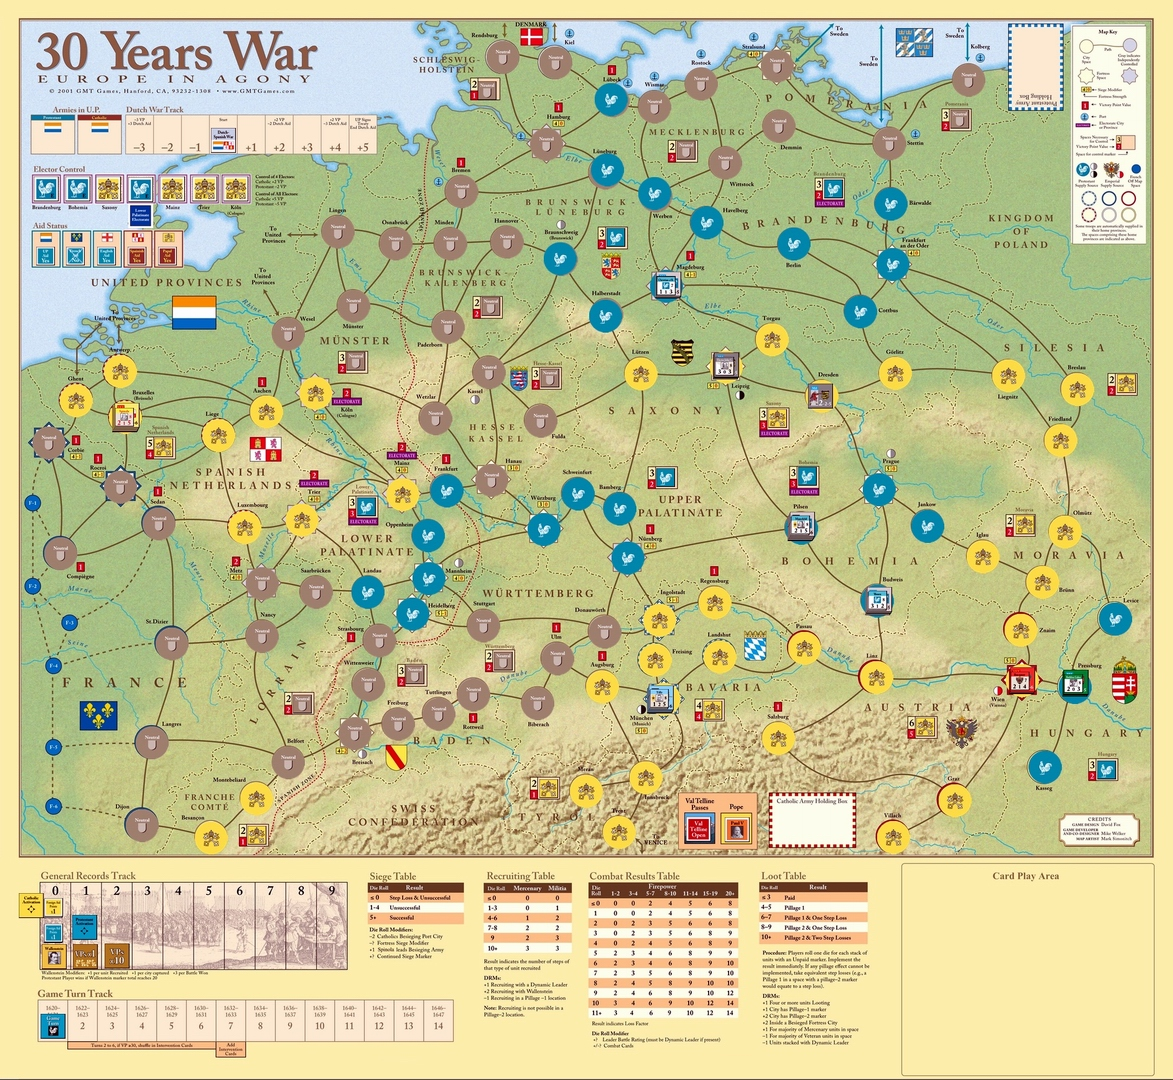 thirty year war essays The aim of this essay will be to analyze the circumstances surrounding the three   due to this it is possible to conclude that the nature of the thirty years war.